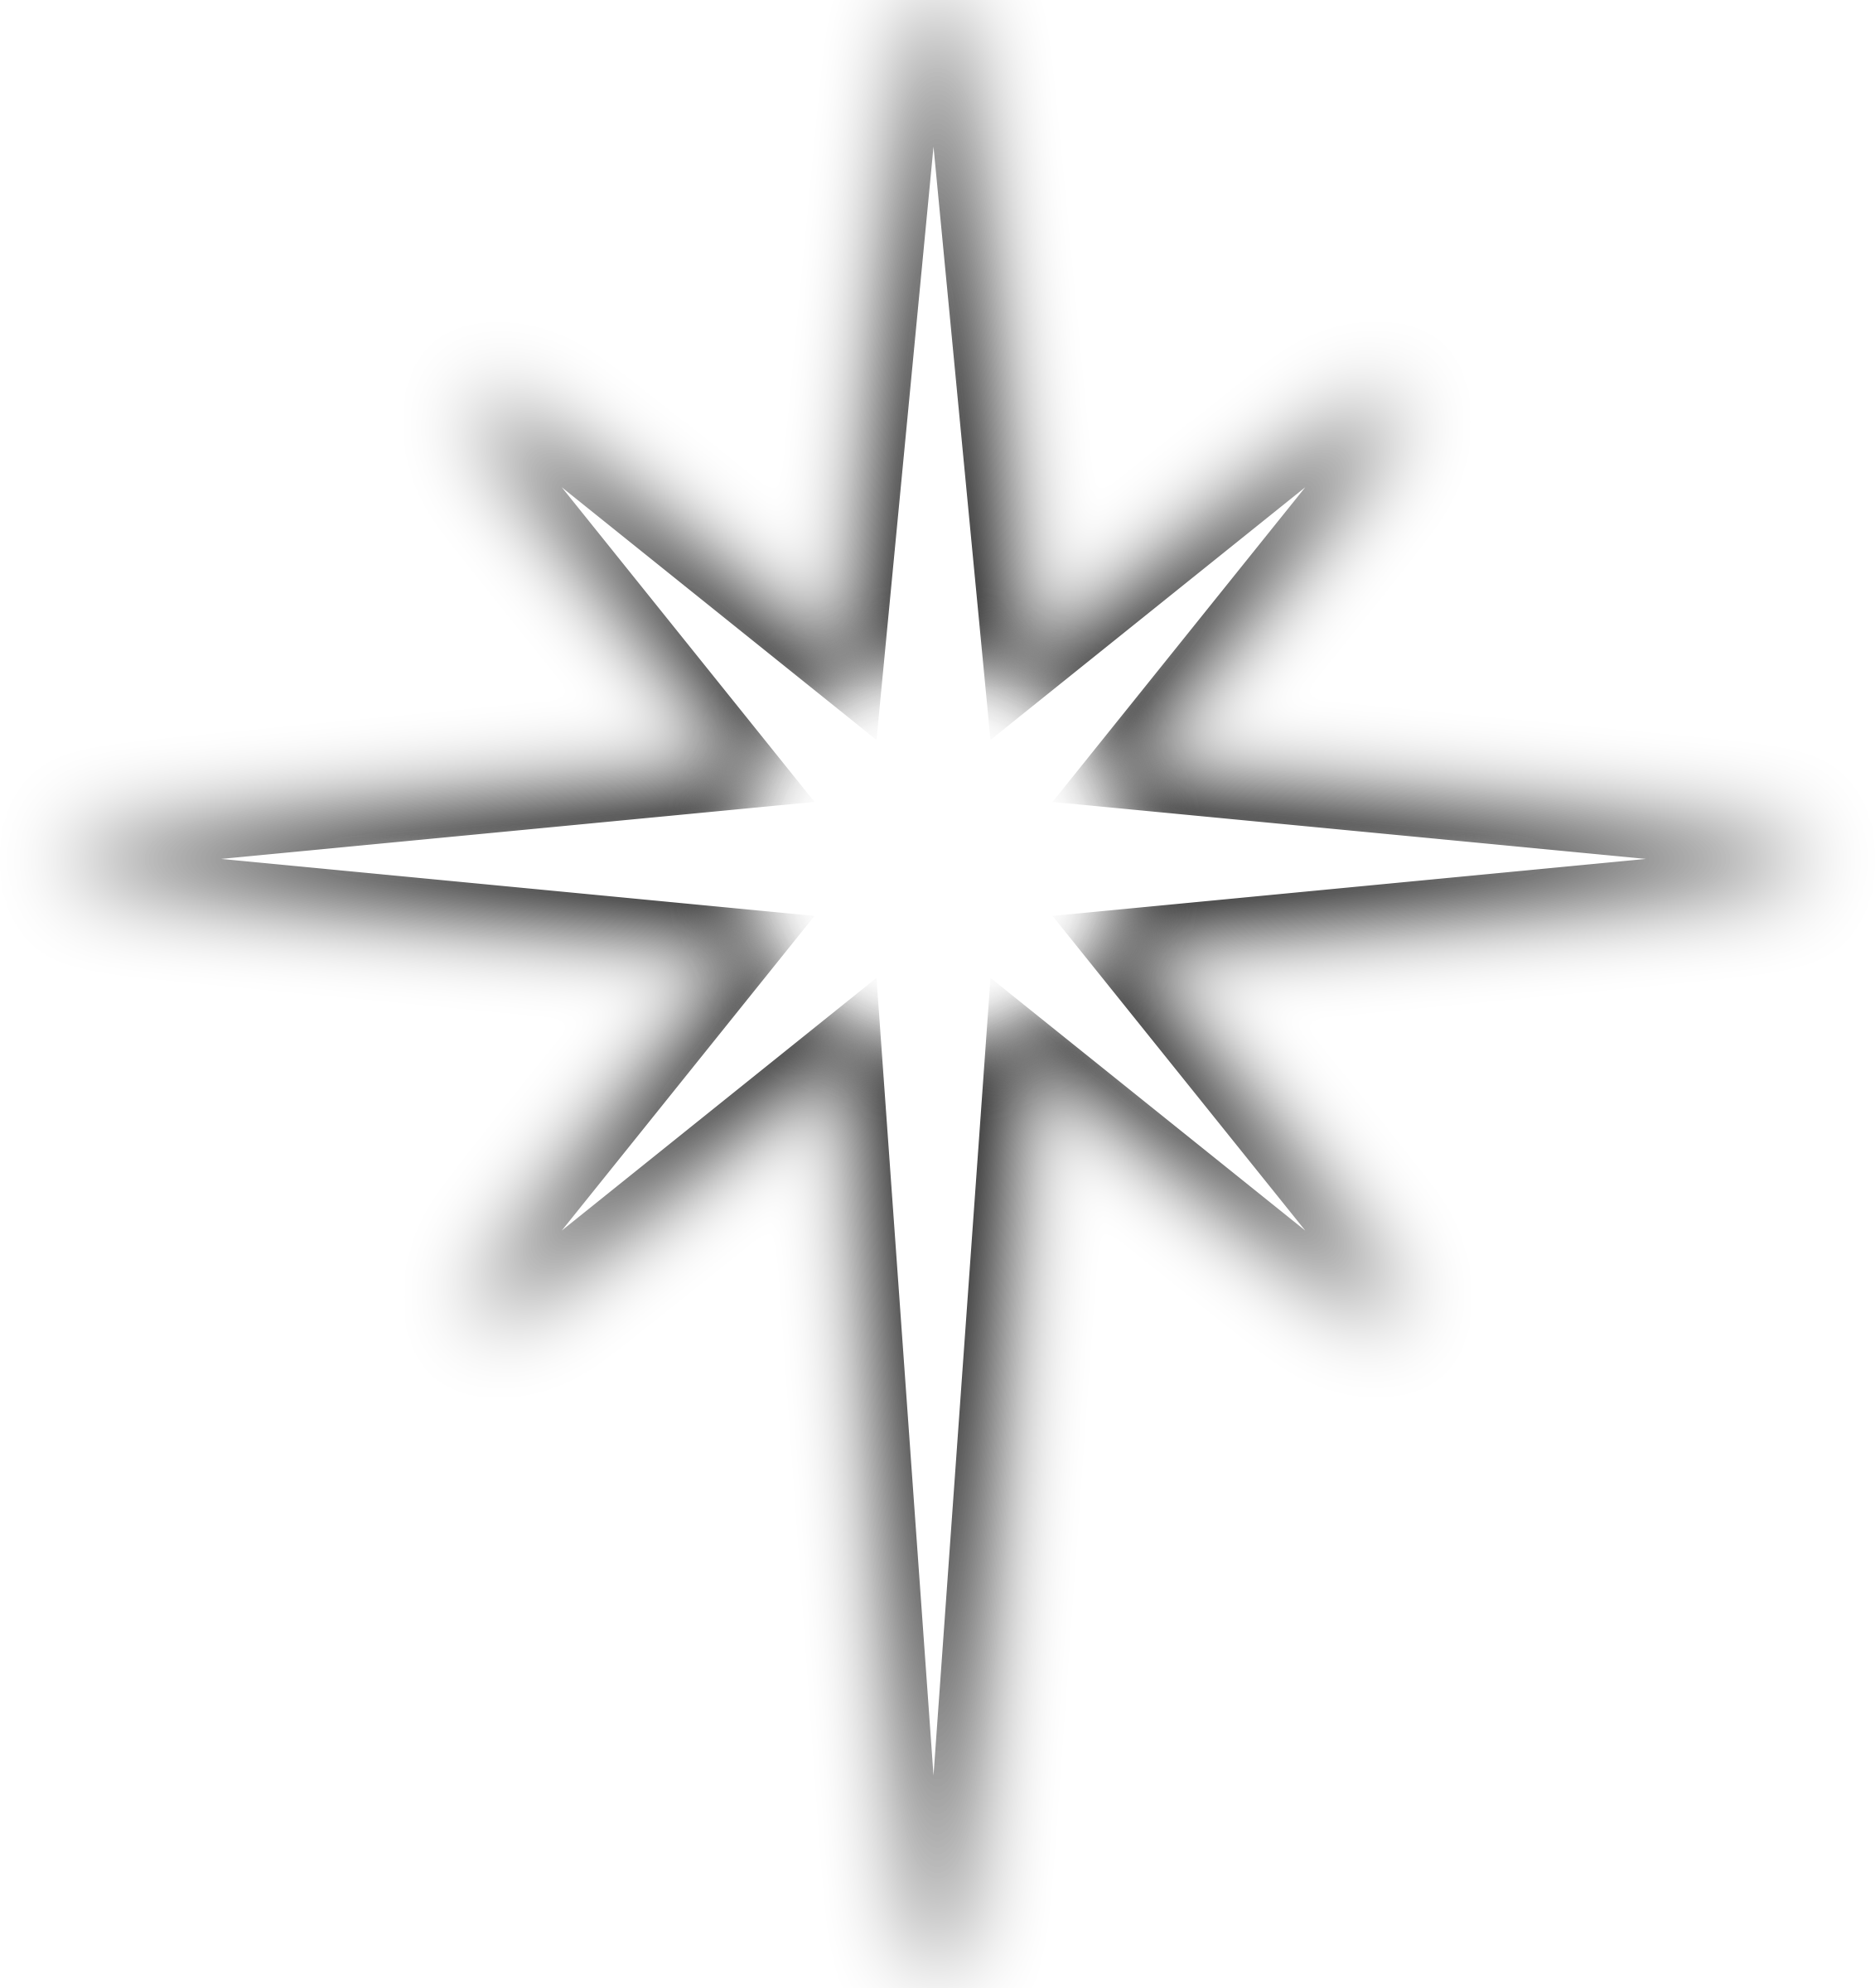 Star lines clipart freeuse download Clipart - Line Art Star freeuse download